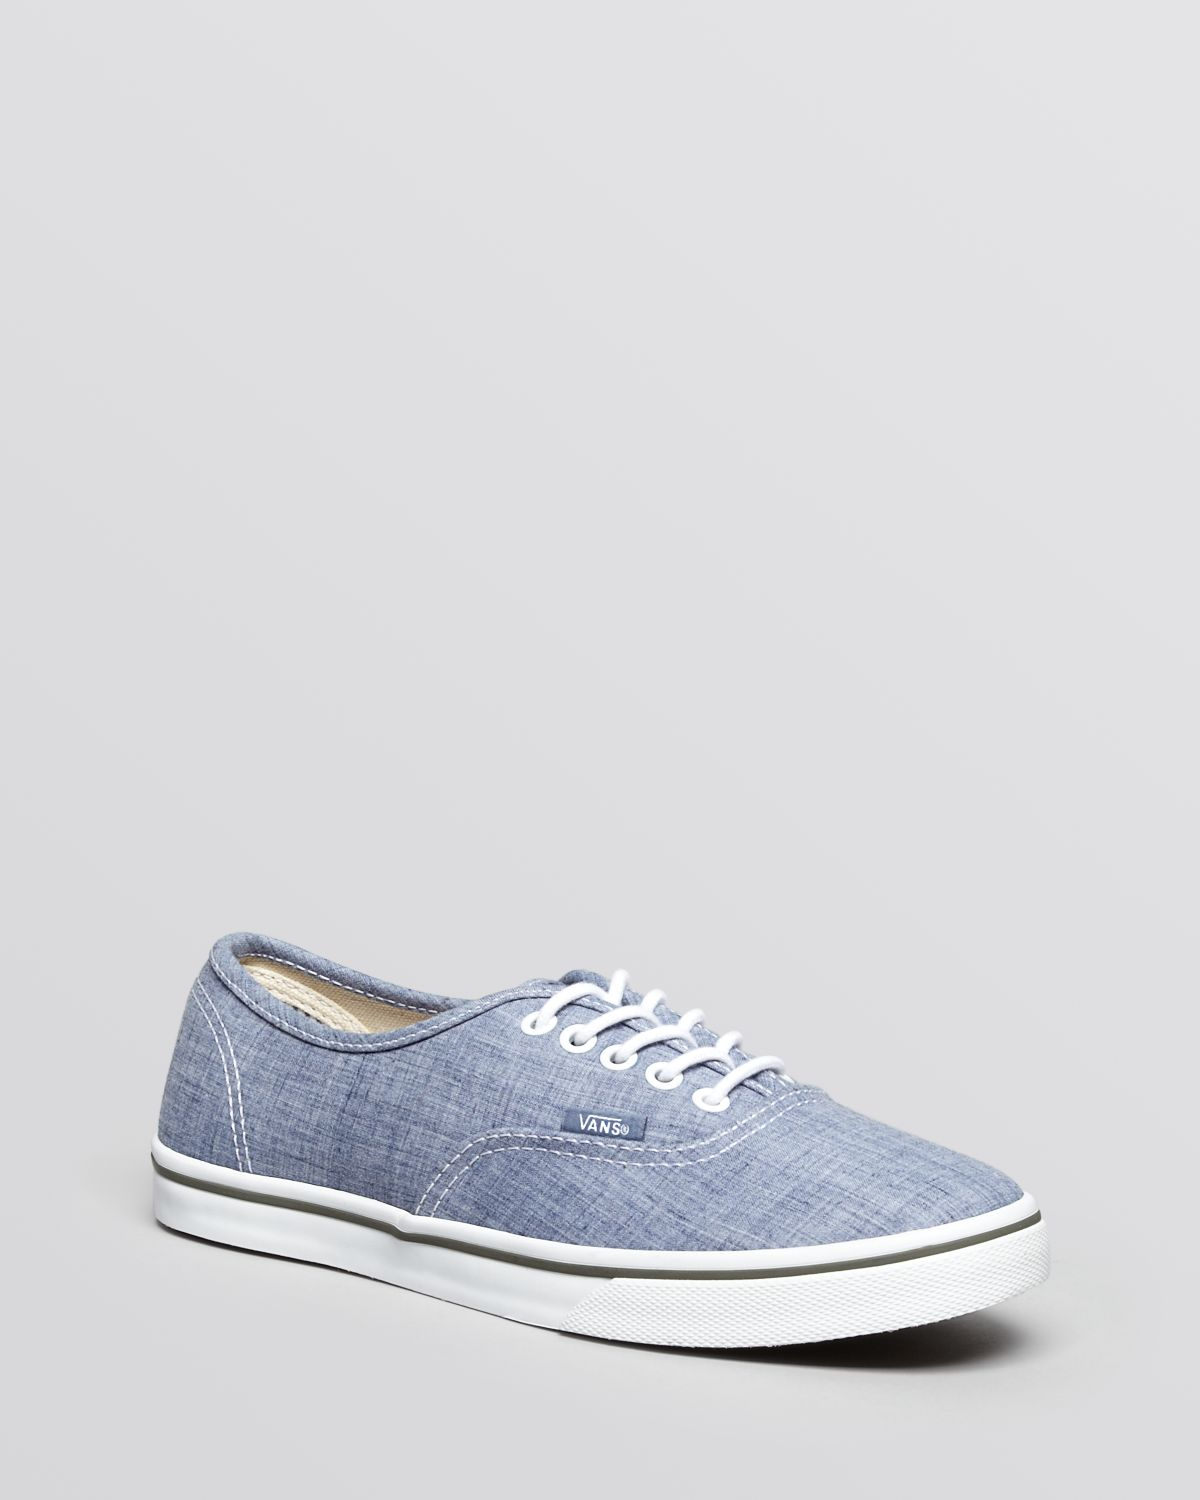 vans flat lace up sneakers authentic lo pro chambray in. Black Bedroom Furniture Sets. Home Design Ideas